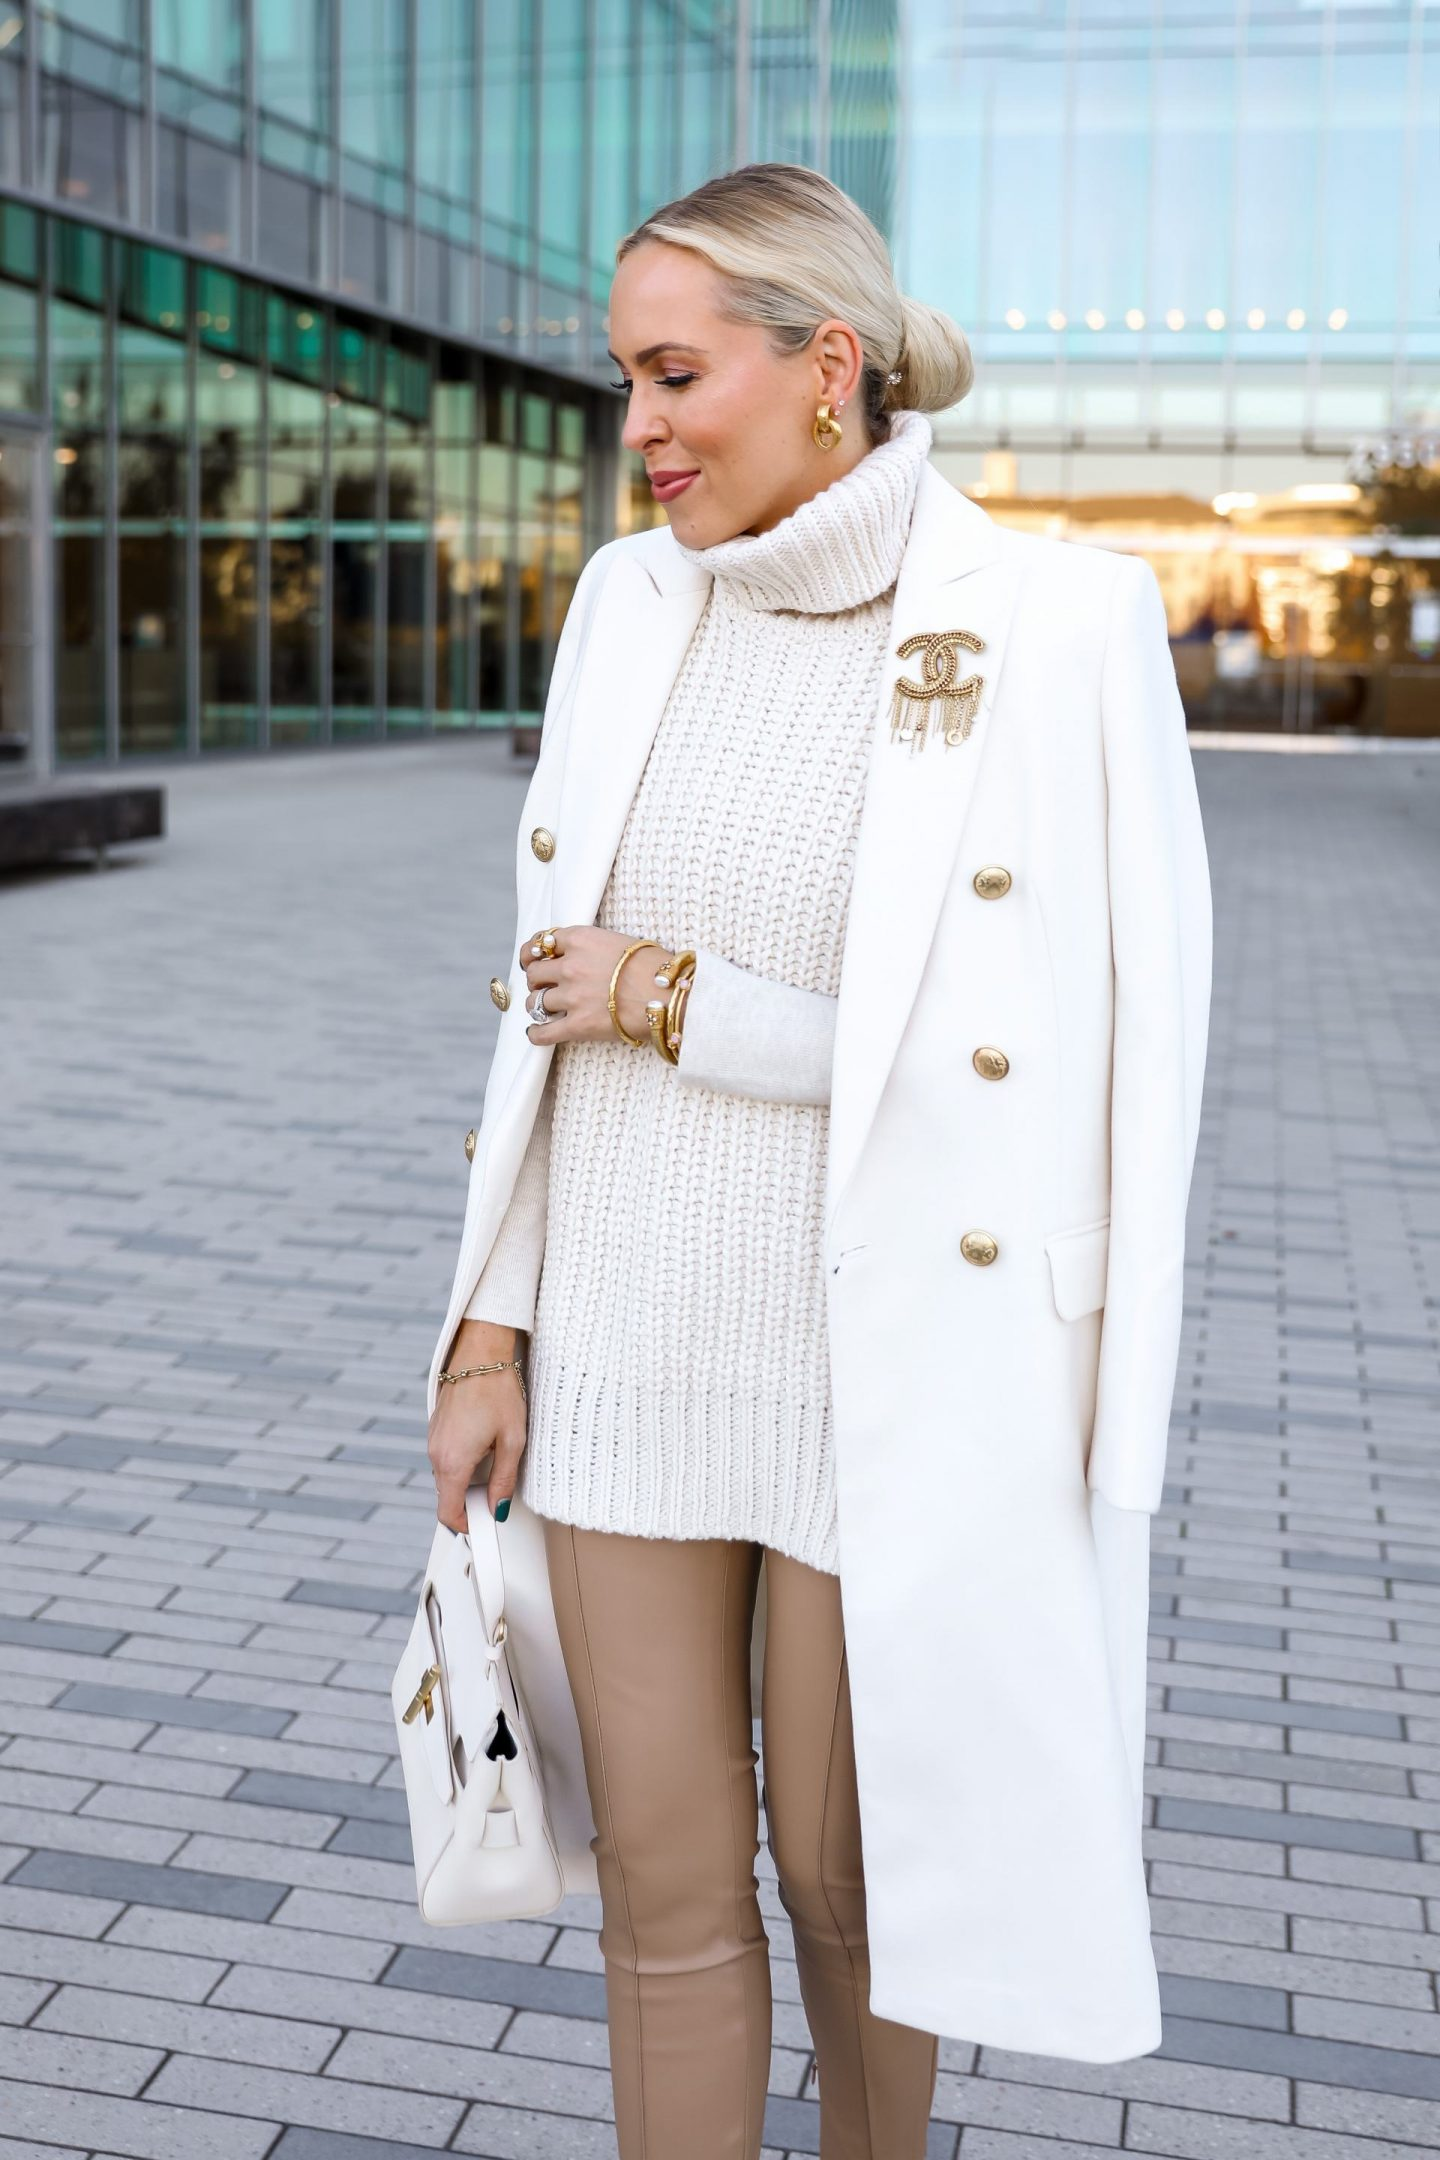 Express Sherpa white coat, best winter white style inspiration, by San Francisco fashion blogger Lombard & Fifth.